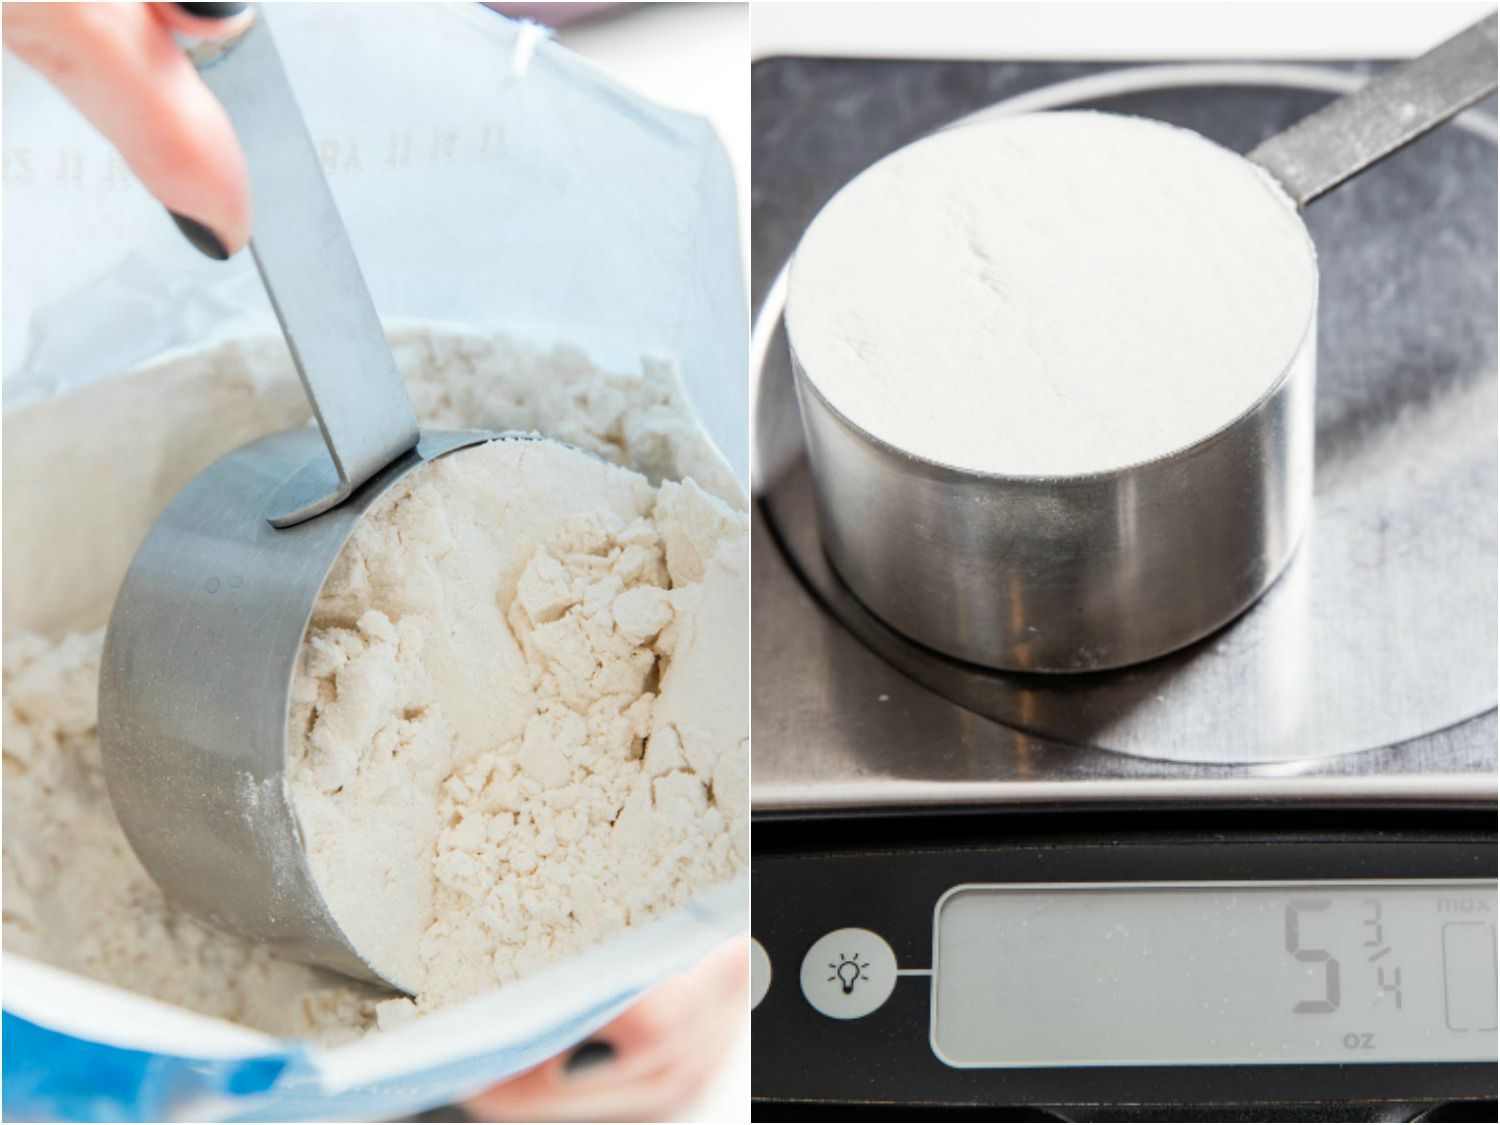 20170227-how-to-measure-flour-vicky-wasik-scoop-comp.jpg